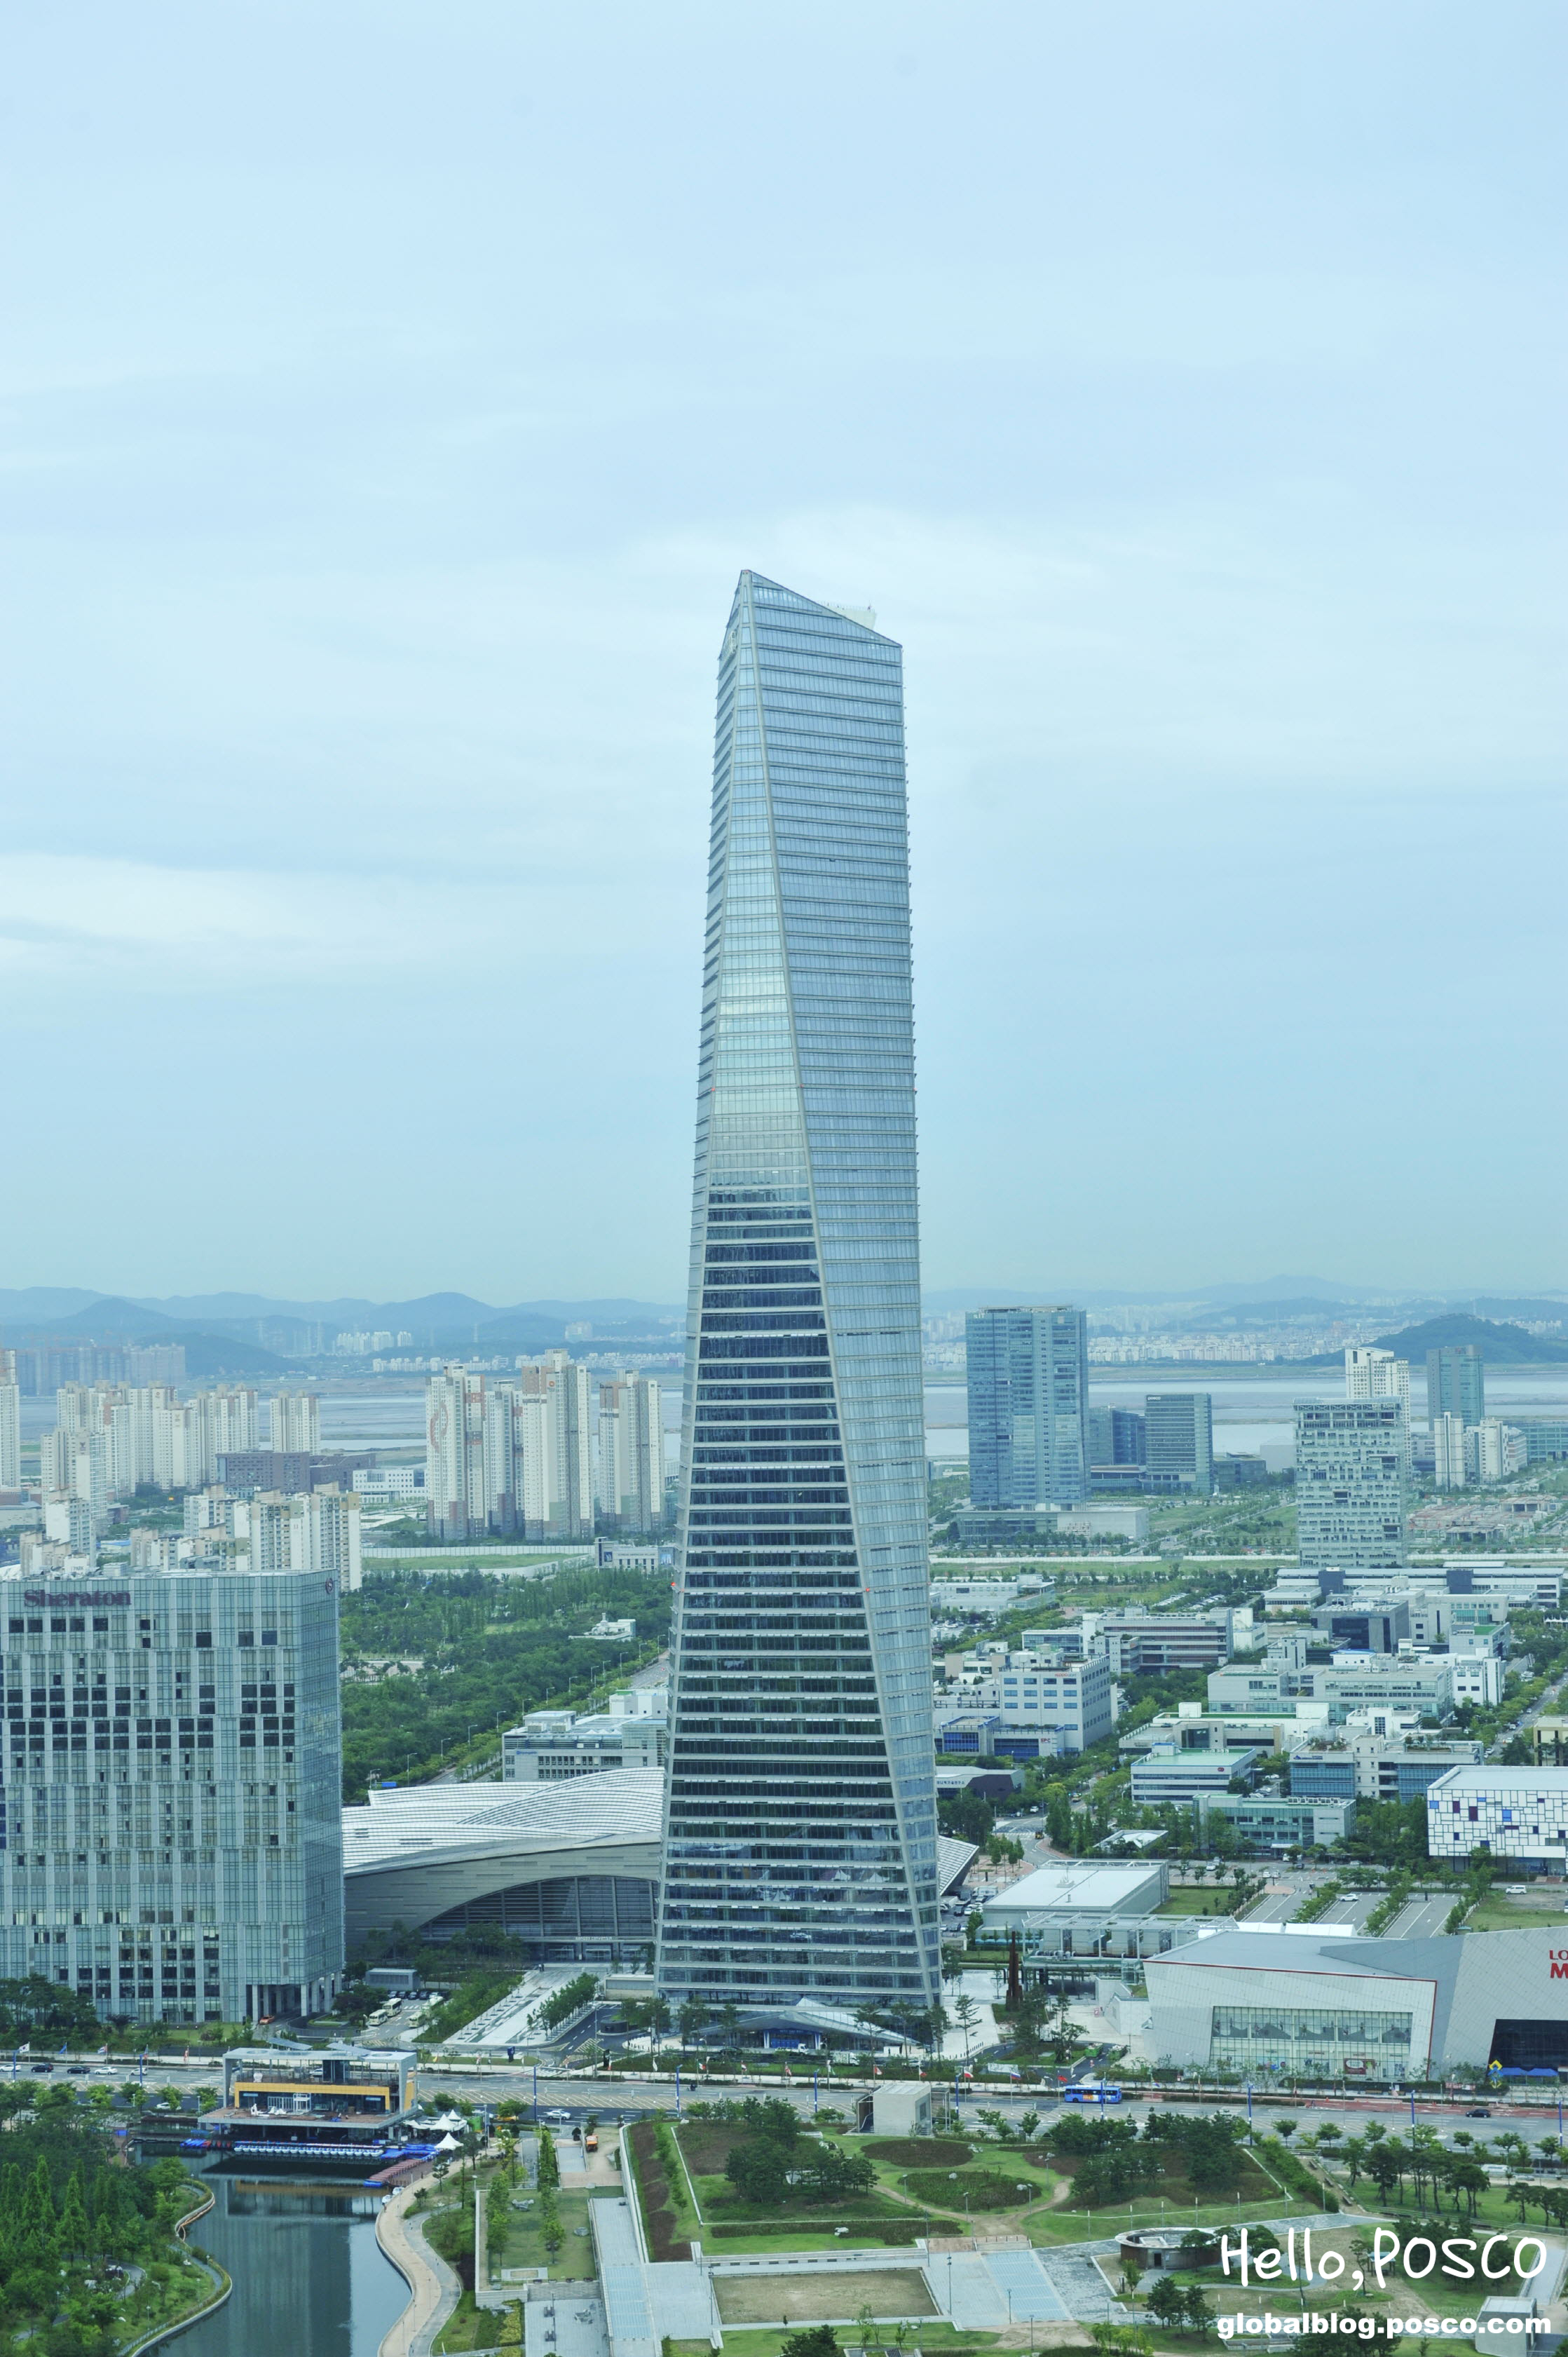 Northeast Asia Trade Tower: The Crown Jewel of POSCO's